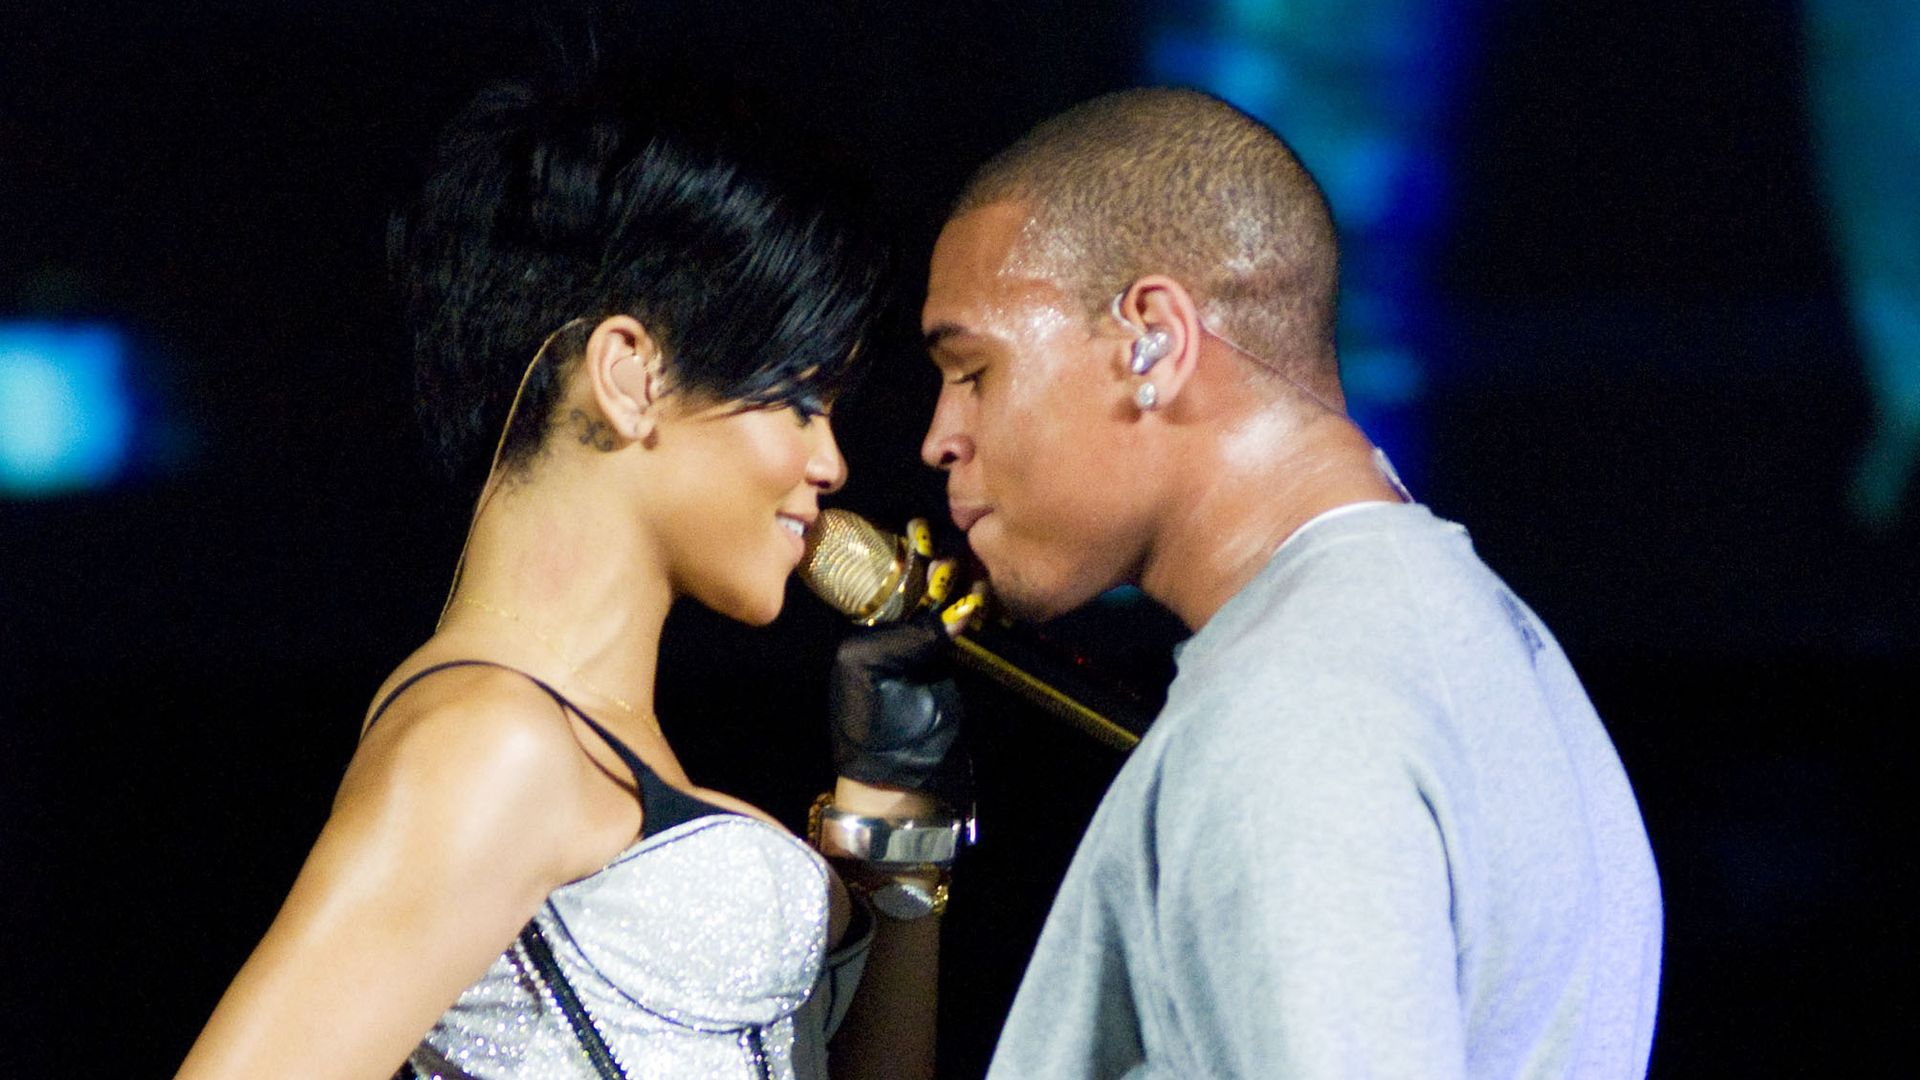 Chris Brown: singer reveals truth about night he assaulted Rihanna Pictures of rhianna beat up by chris brown